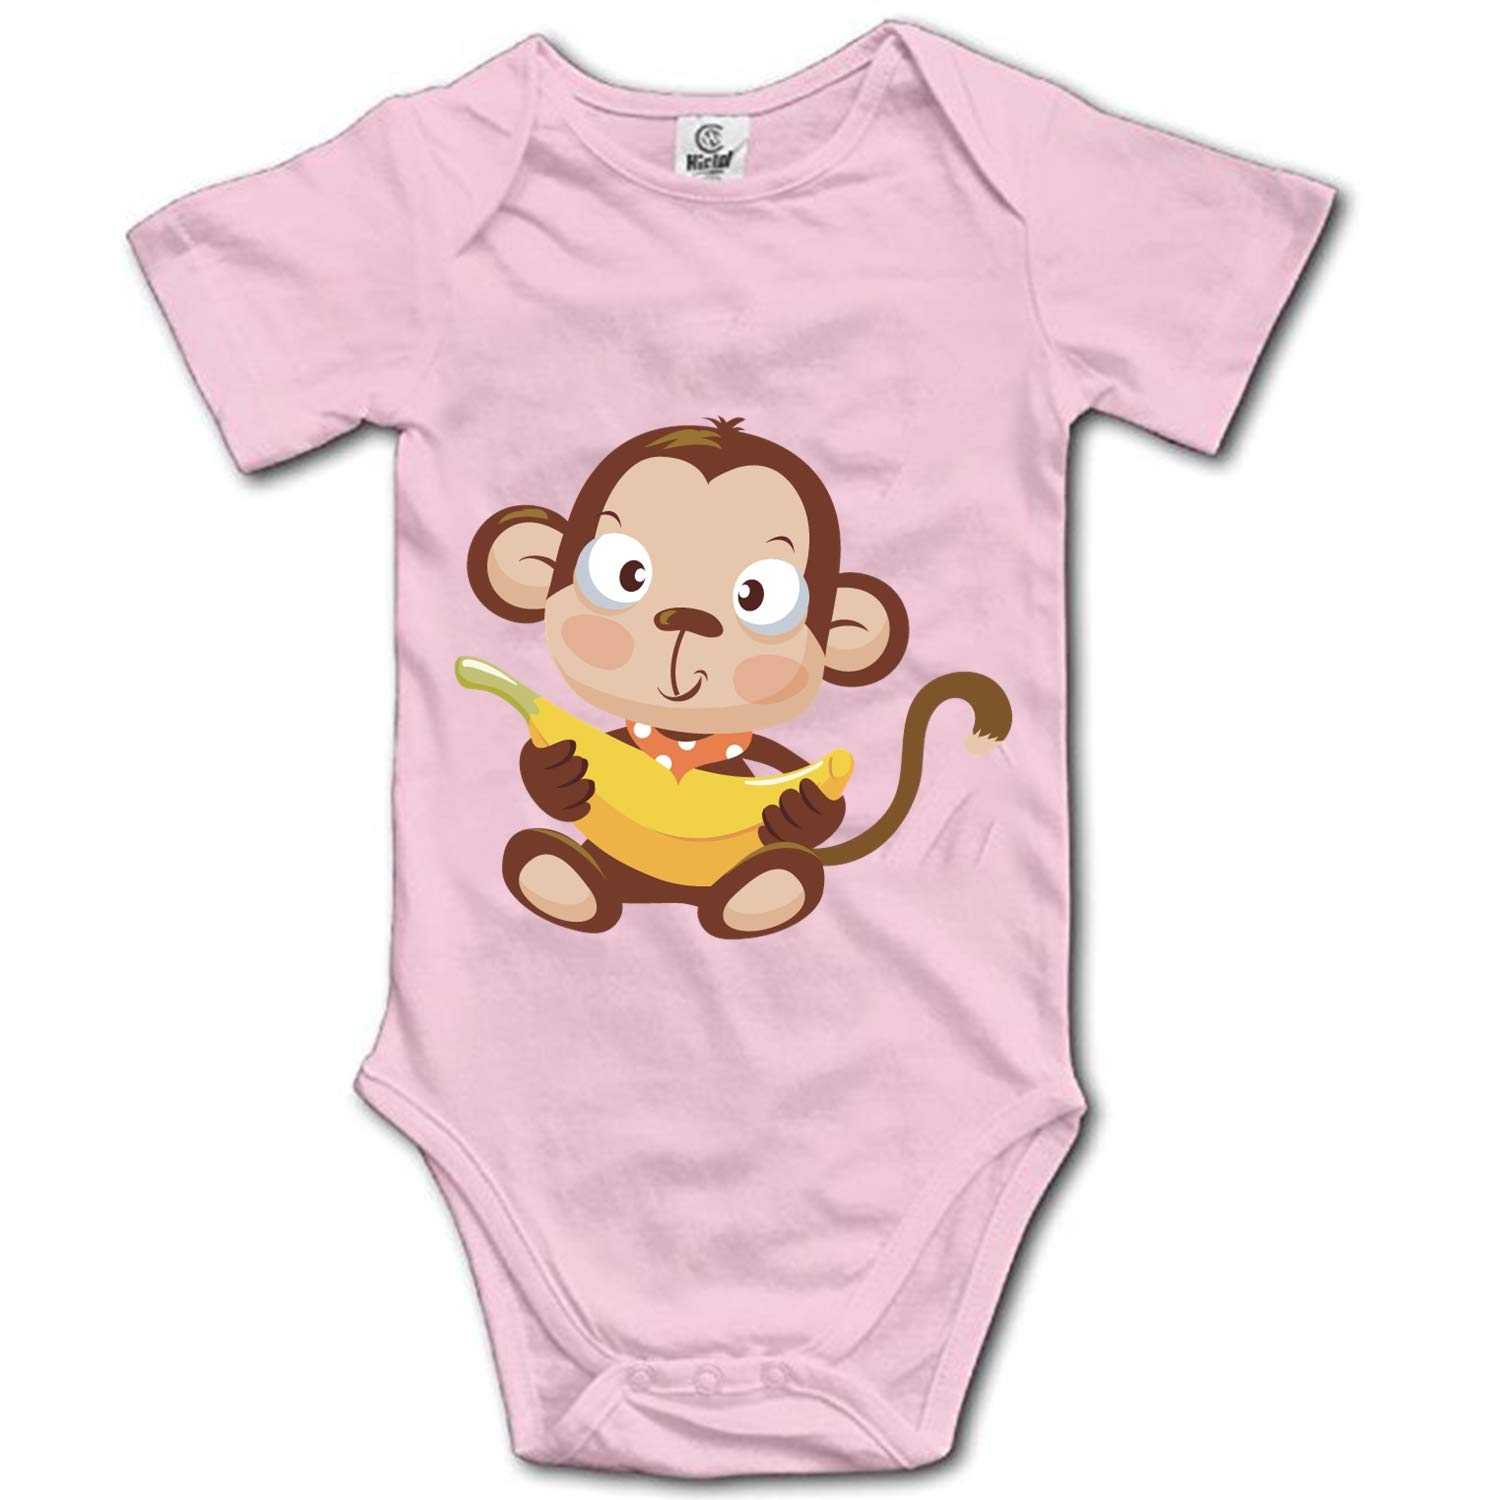 YPZOOS Basic Bitch Getting Rich Cotton Unisex Baby Infant Short Sleeve Onesies Bodysuits